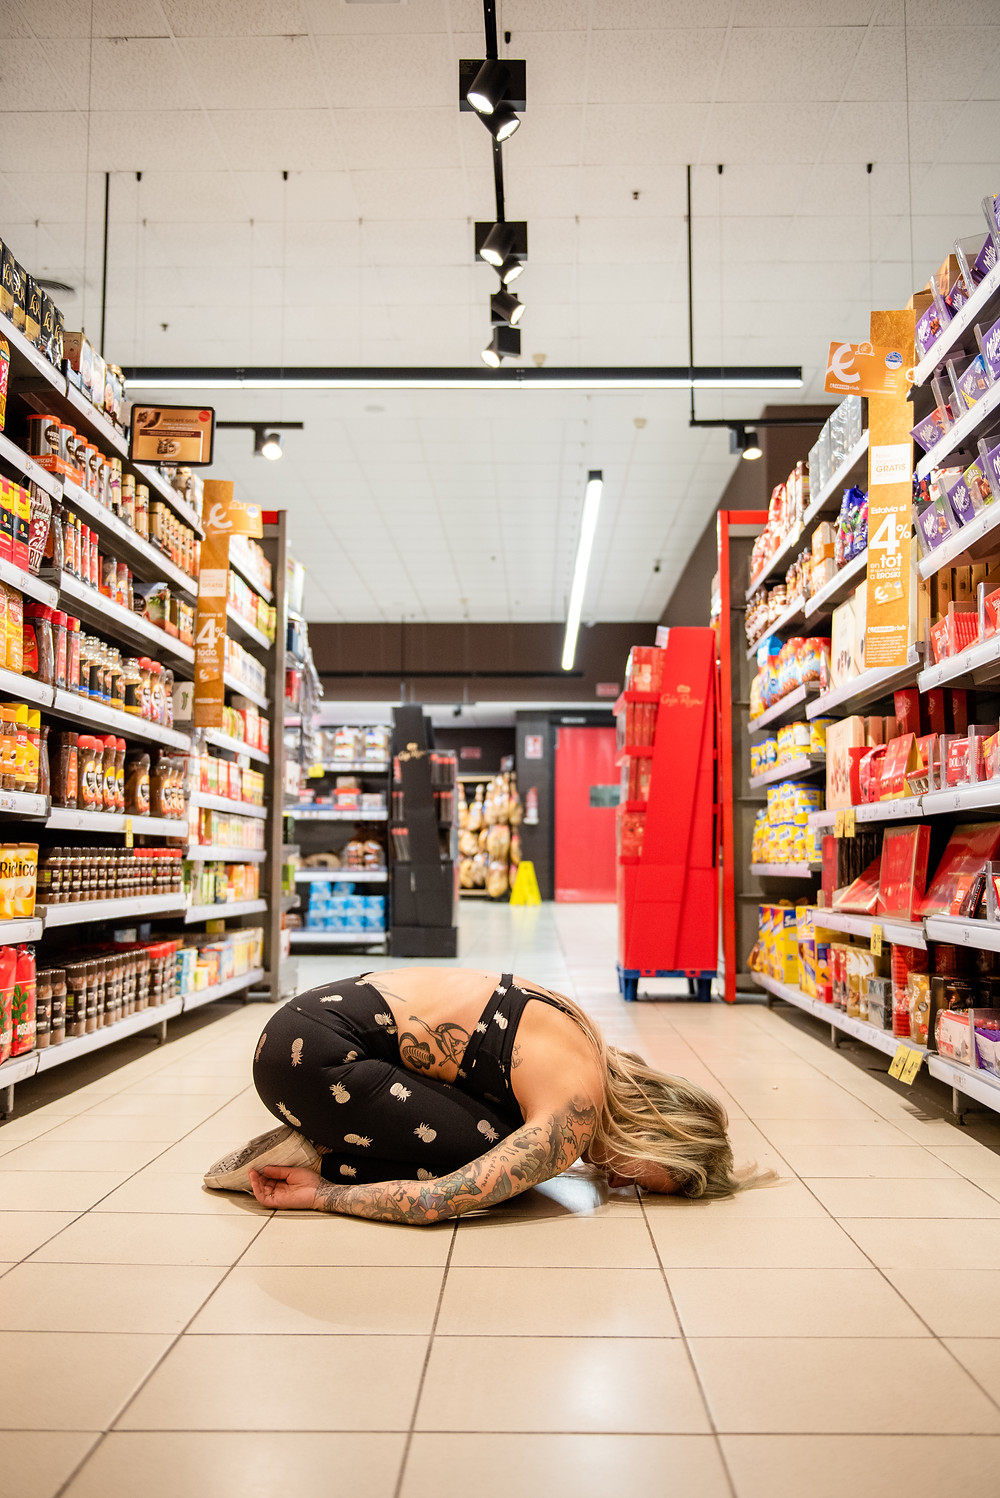 Child's pose at the supermarket